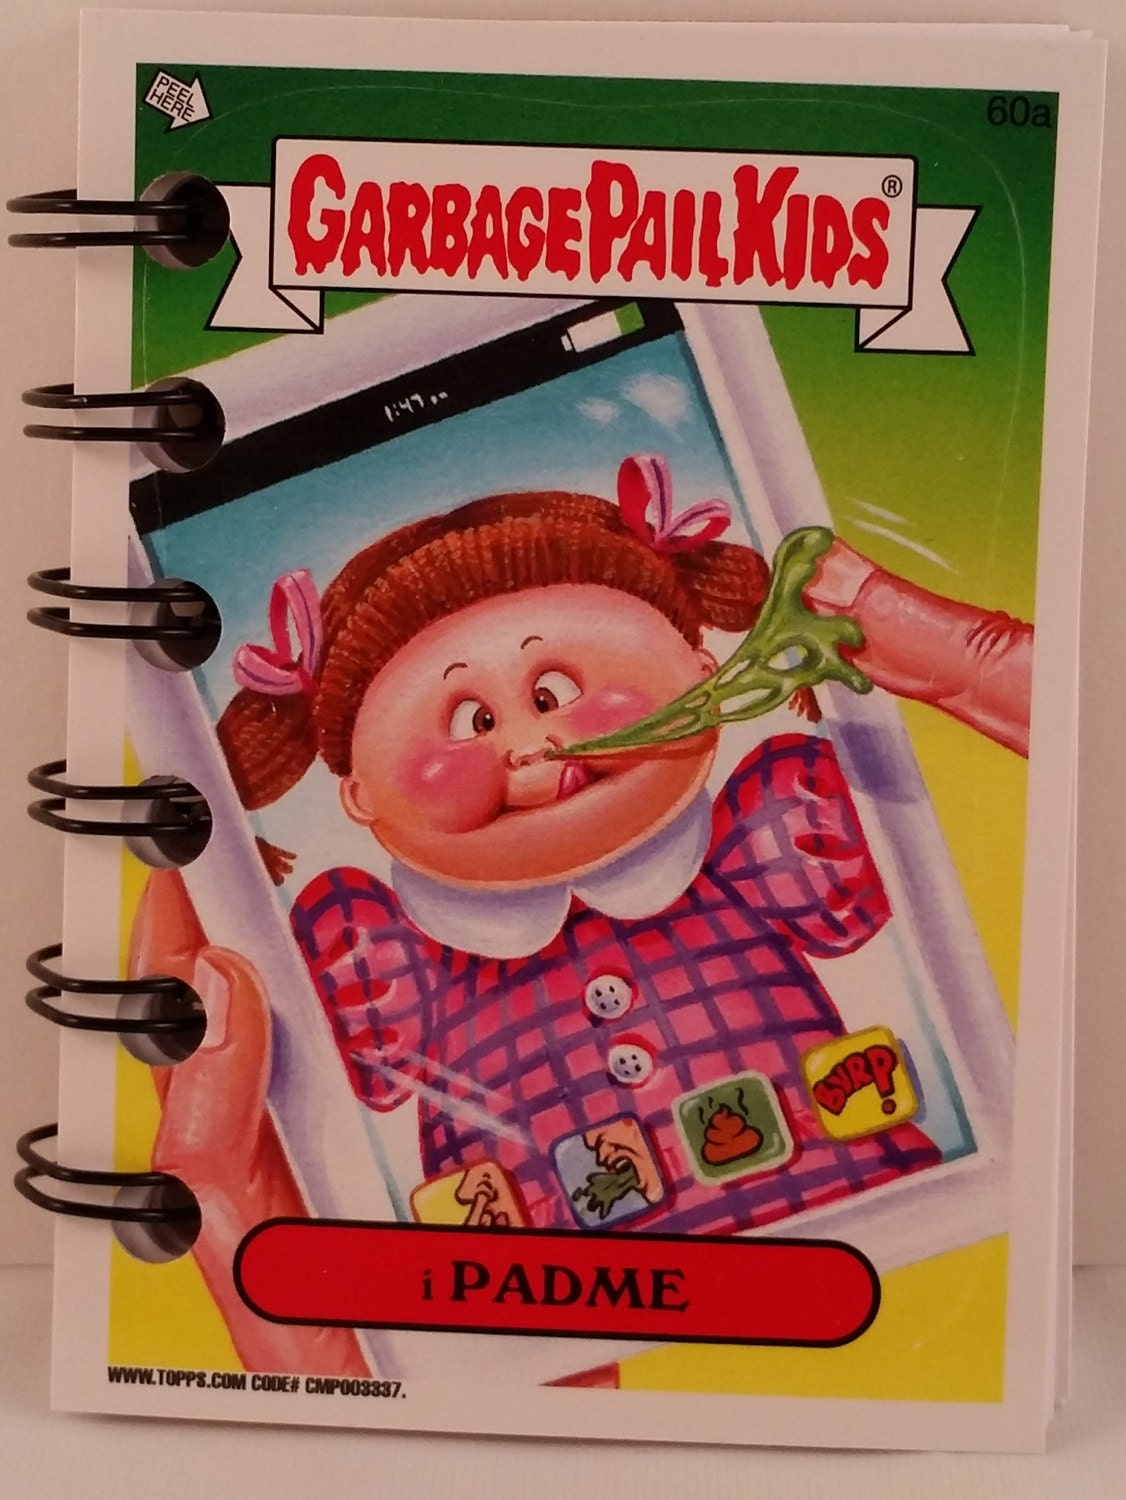 Garbage Pail Kids Find Your Name The